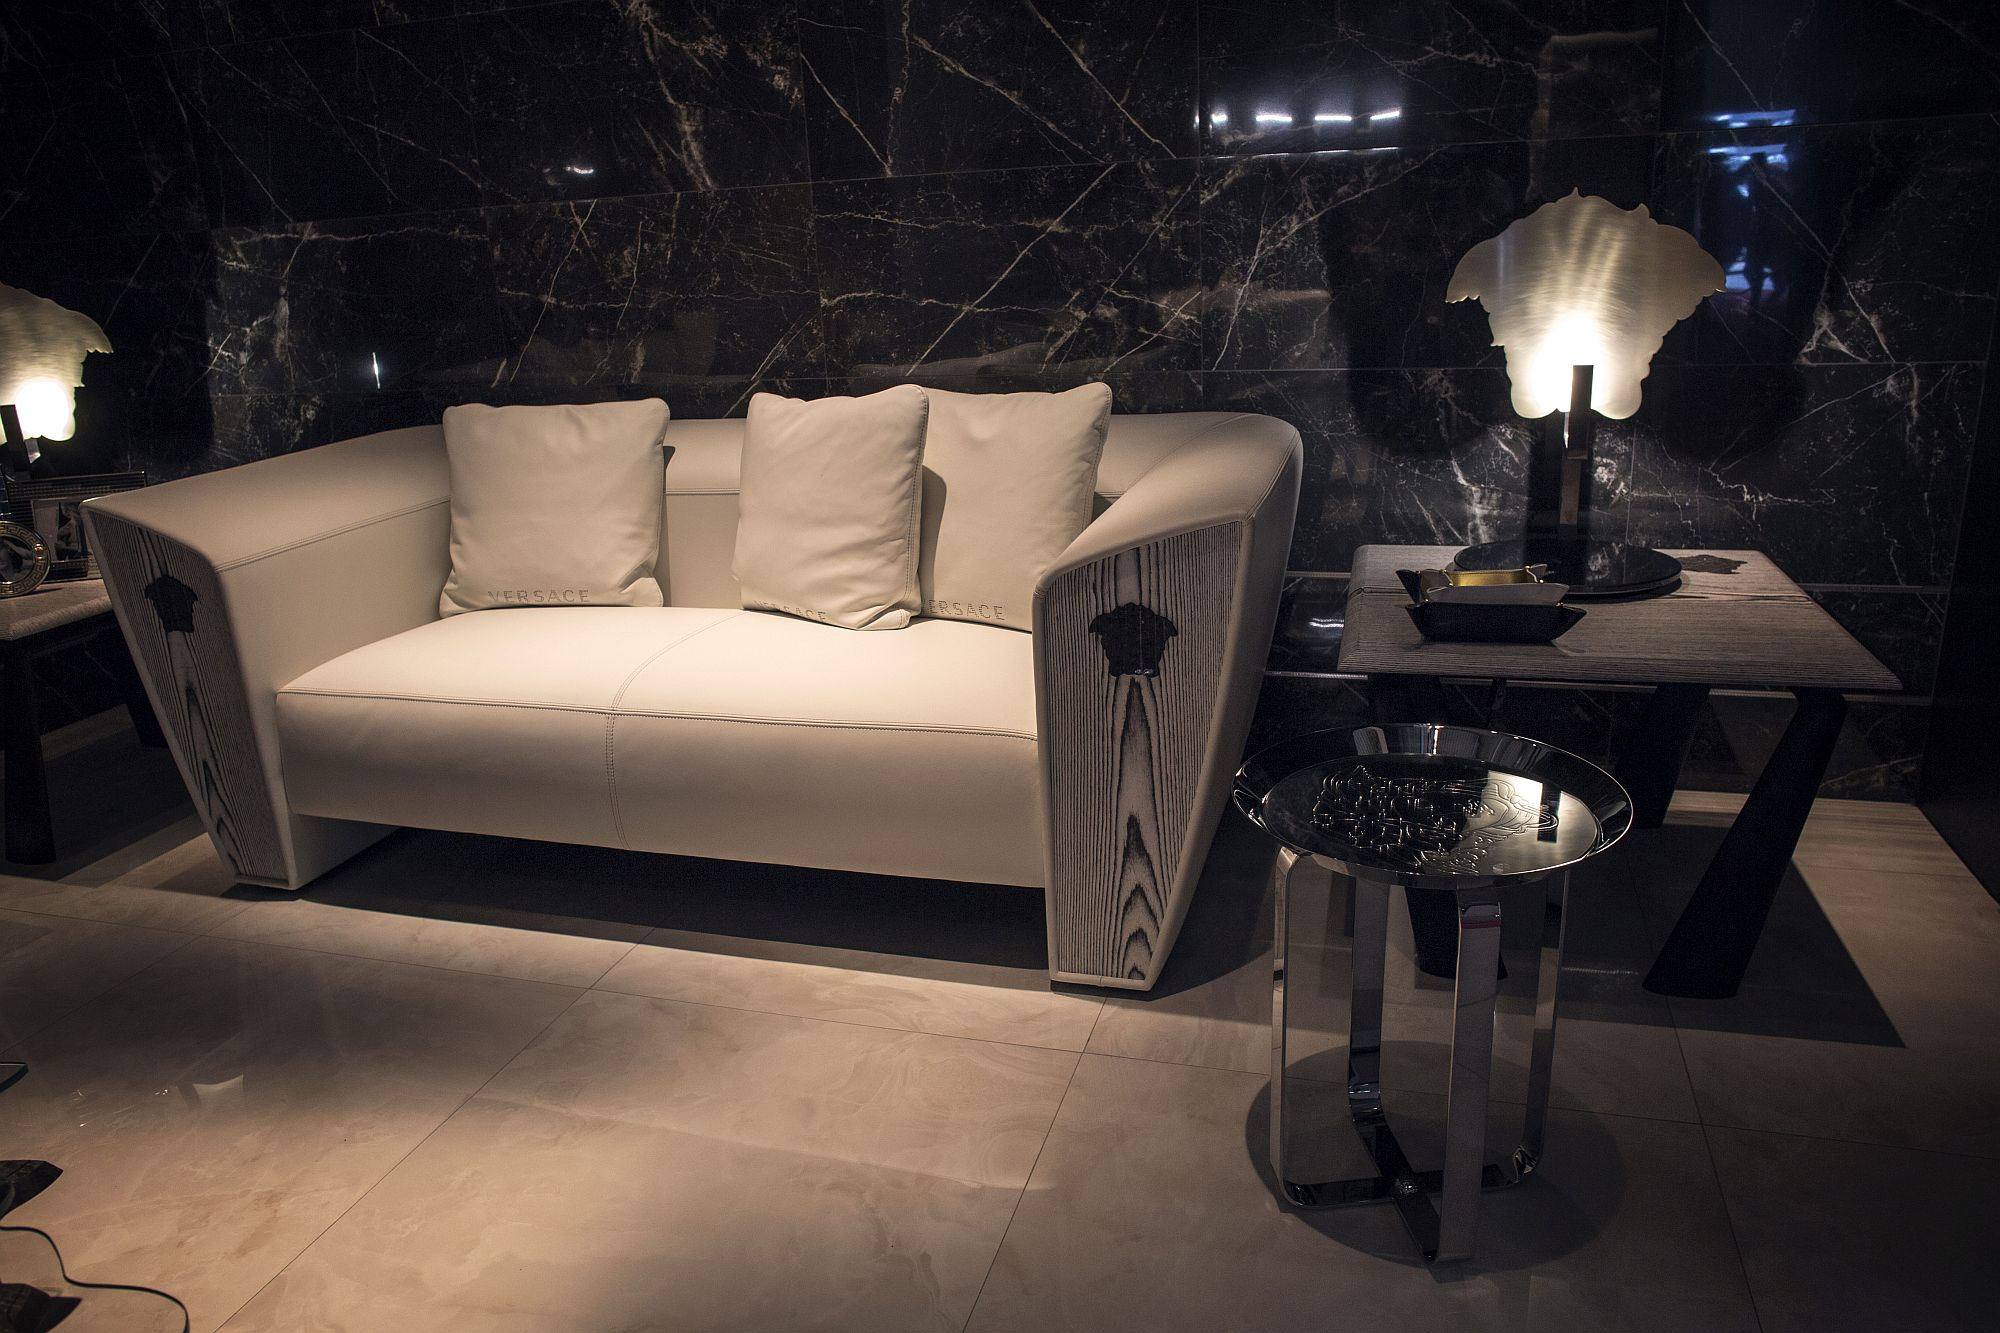 Comfortable-couch-in-whit-with-classic-modern-design